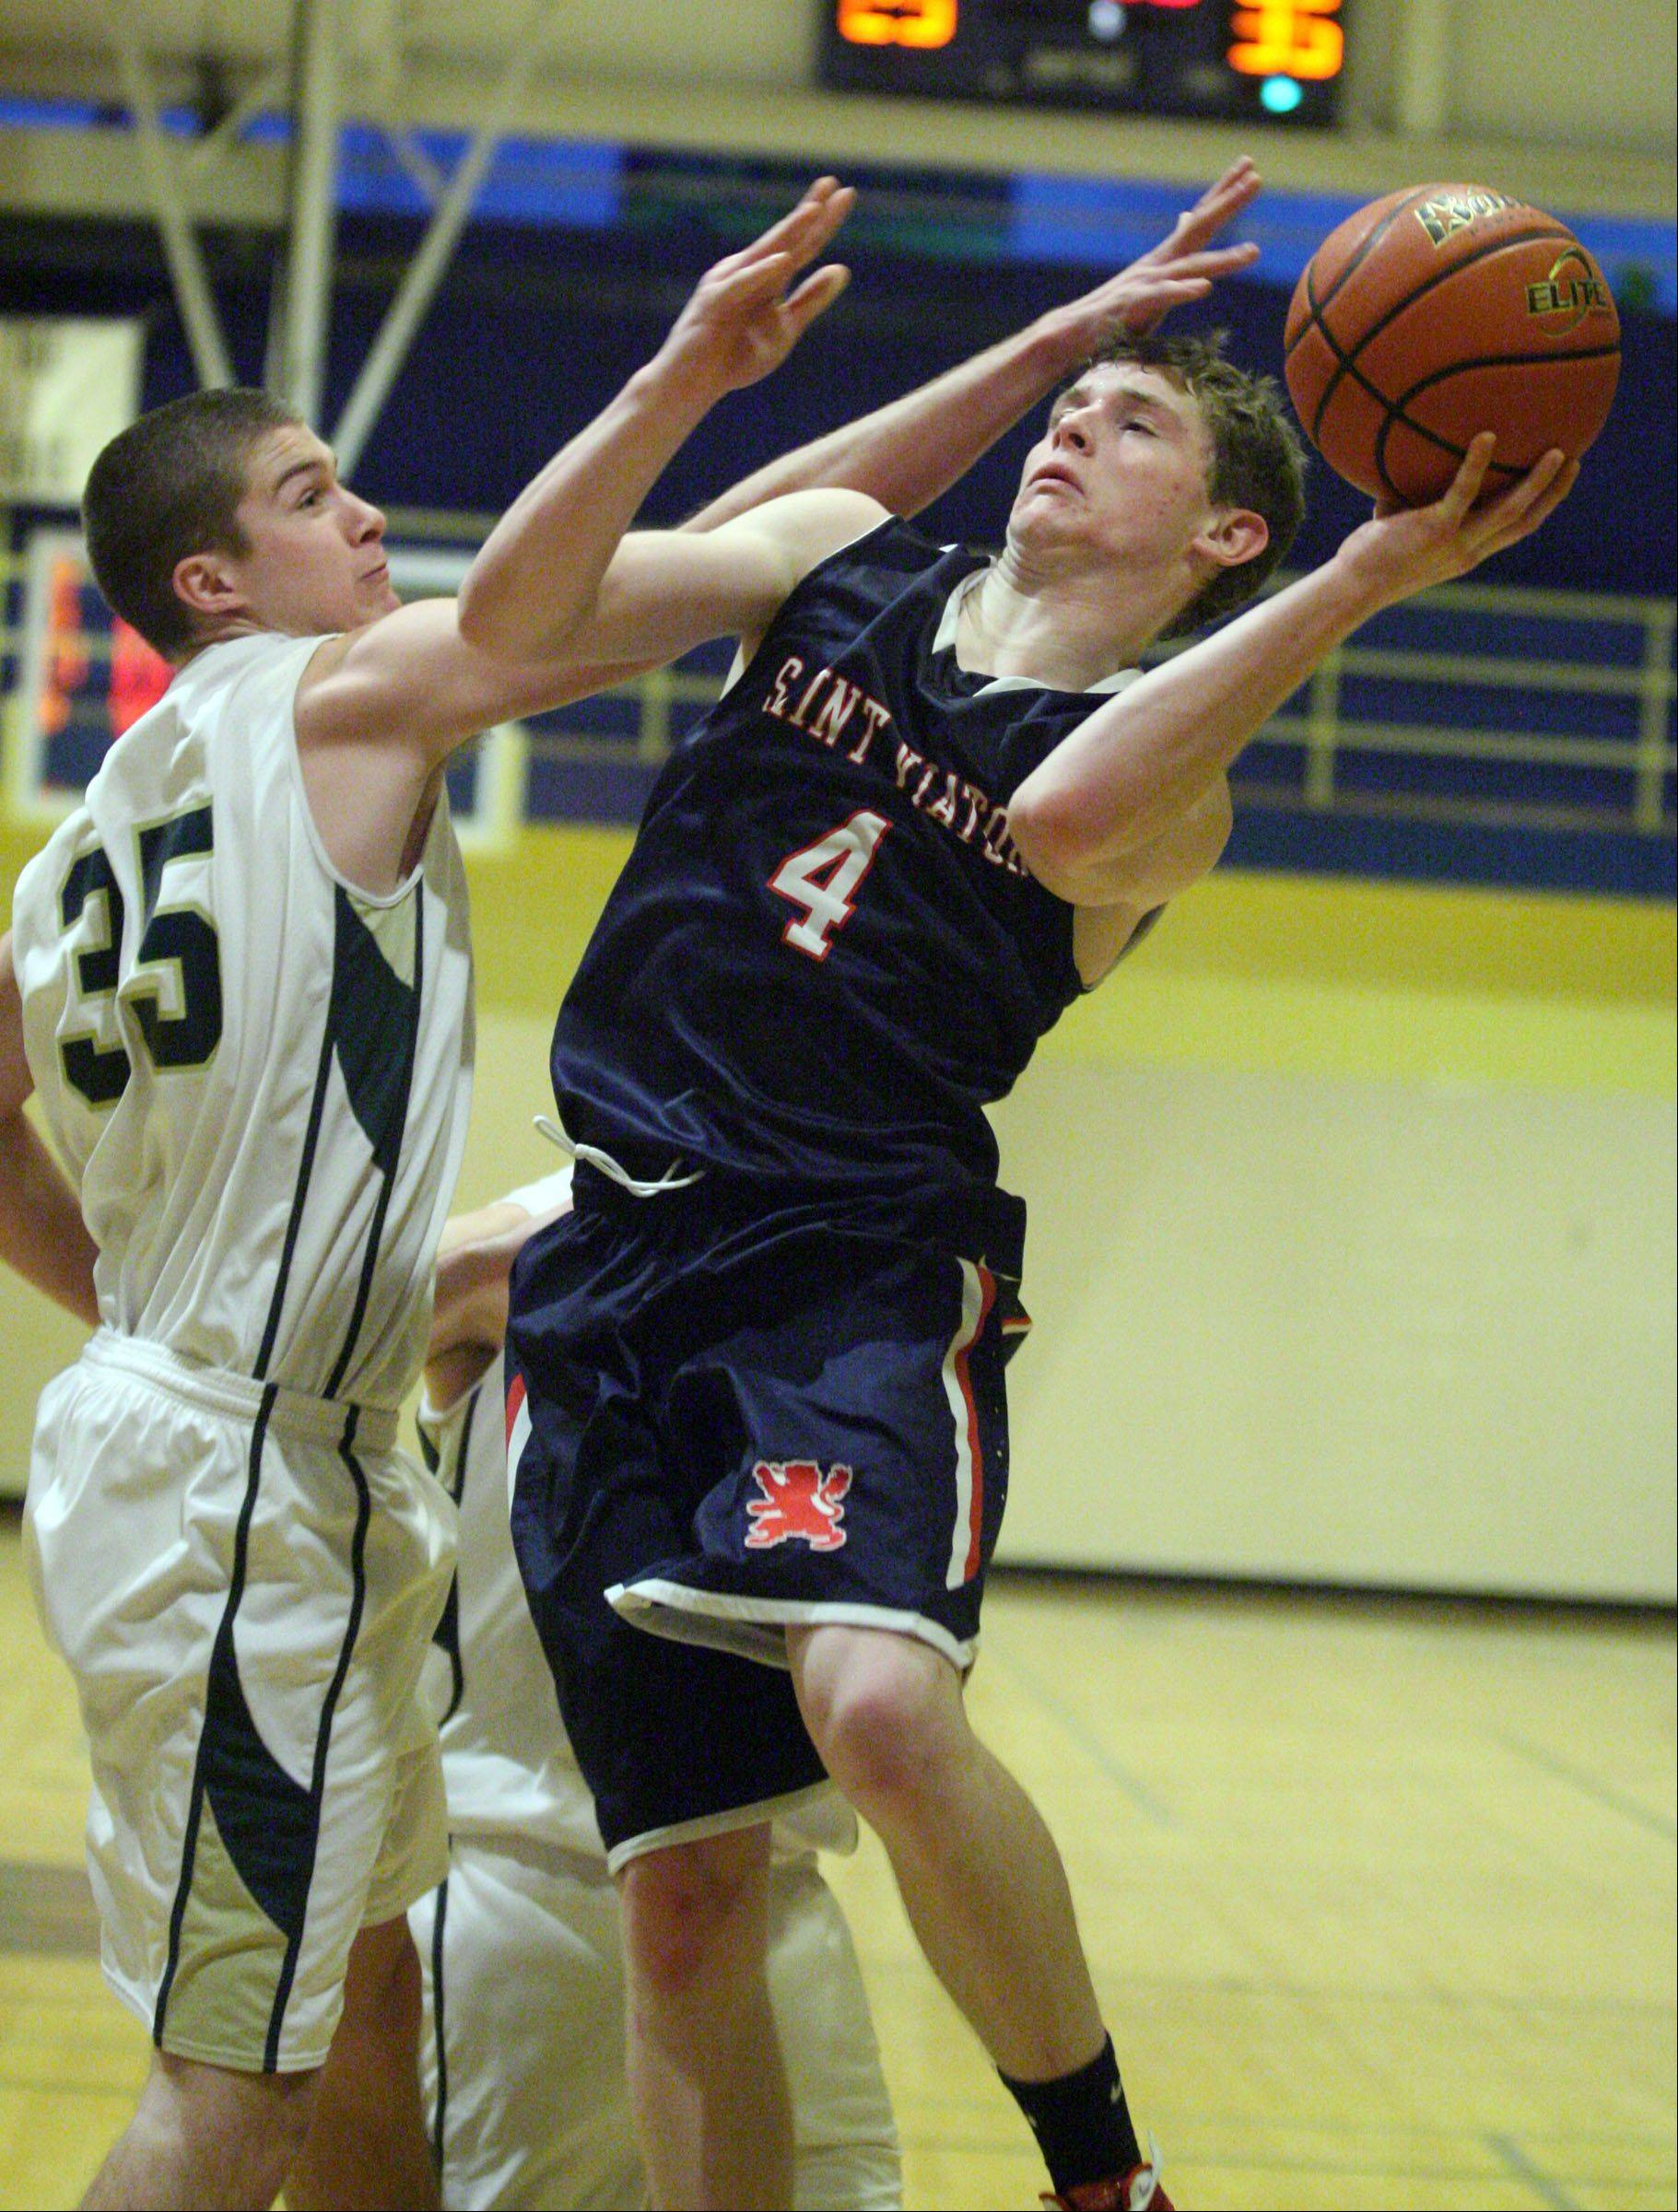 St. Viator's Kevin Hammarlund shoots past Fremd's Tom Cordell in the 35th annual Wheeling Wildcat Hardwood Classic on Thursday.